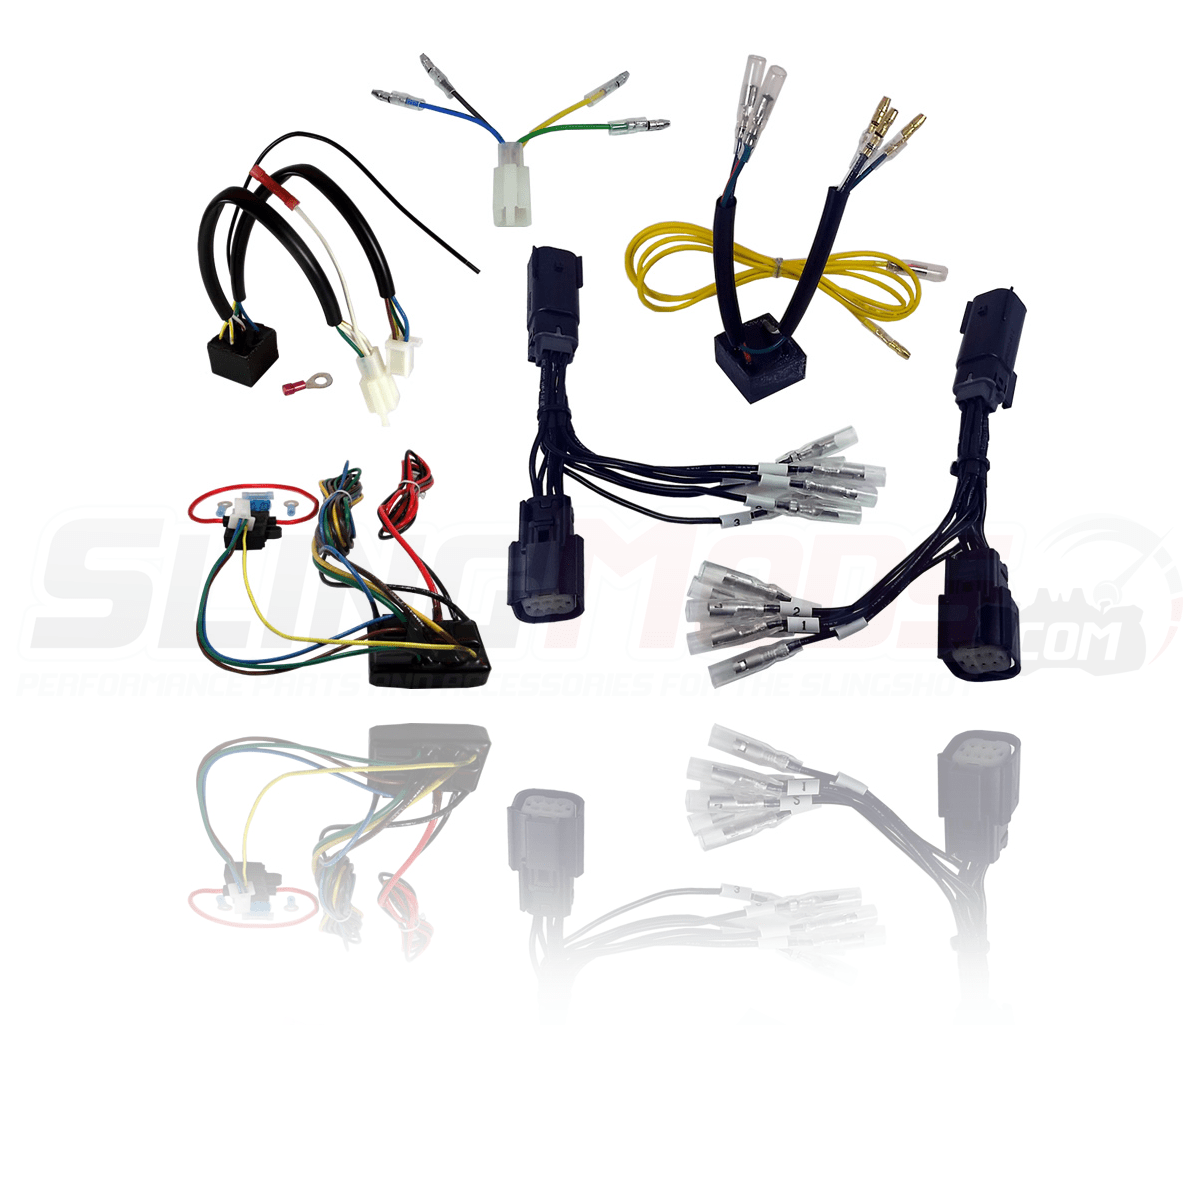 hight resolution of polaris slingshot trailer hitch wiring harnesstrailer hitches wiring harness 5